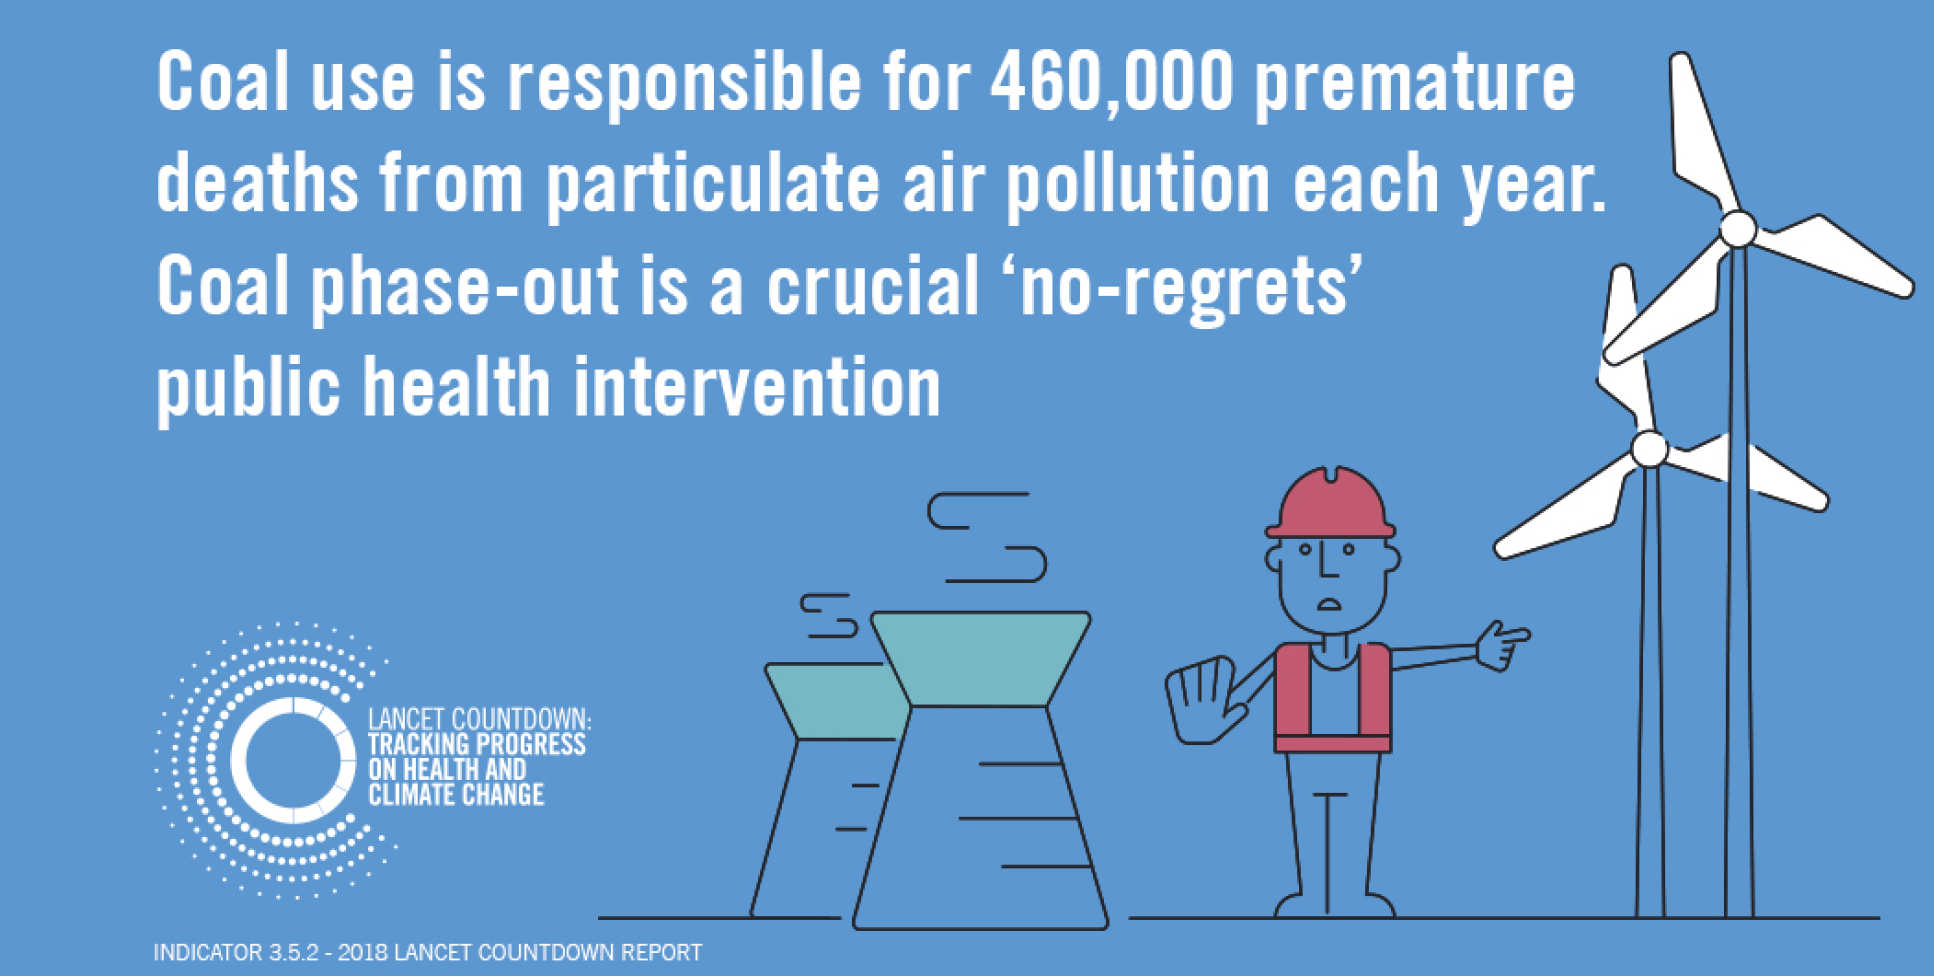 Infographic showing impact of coal on particulate air pollution